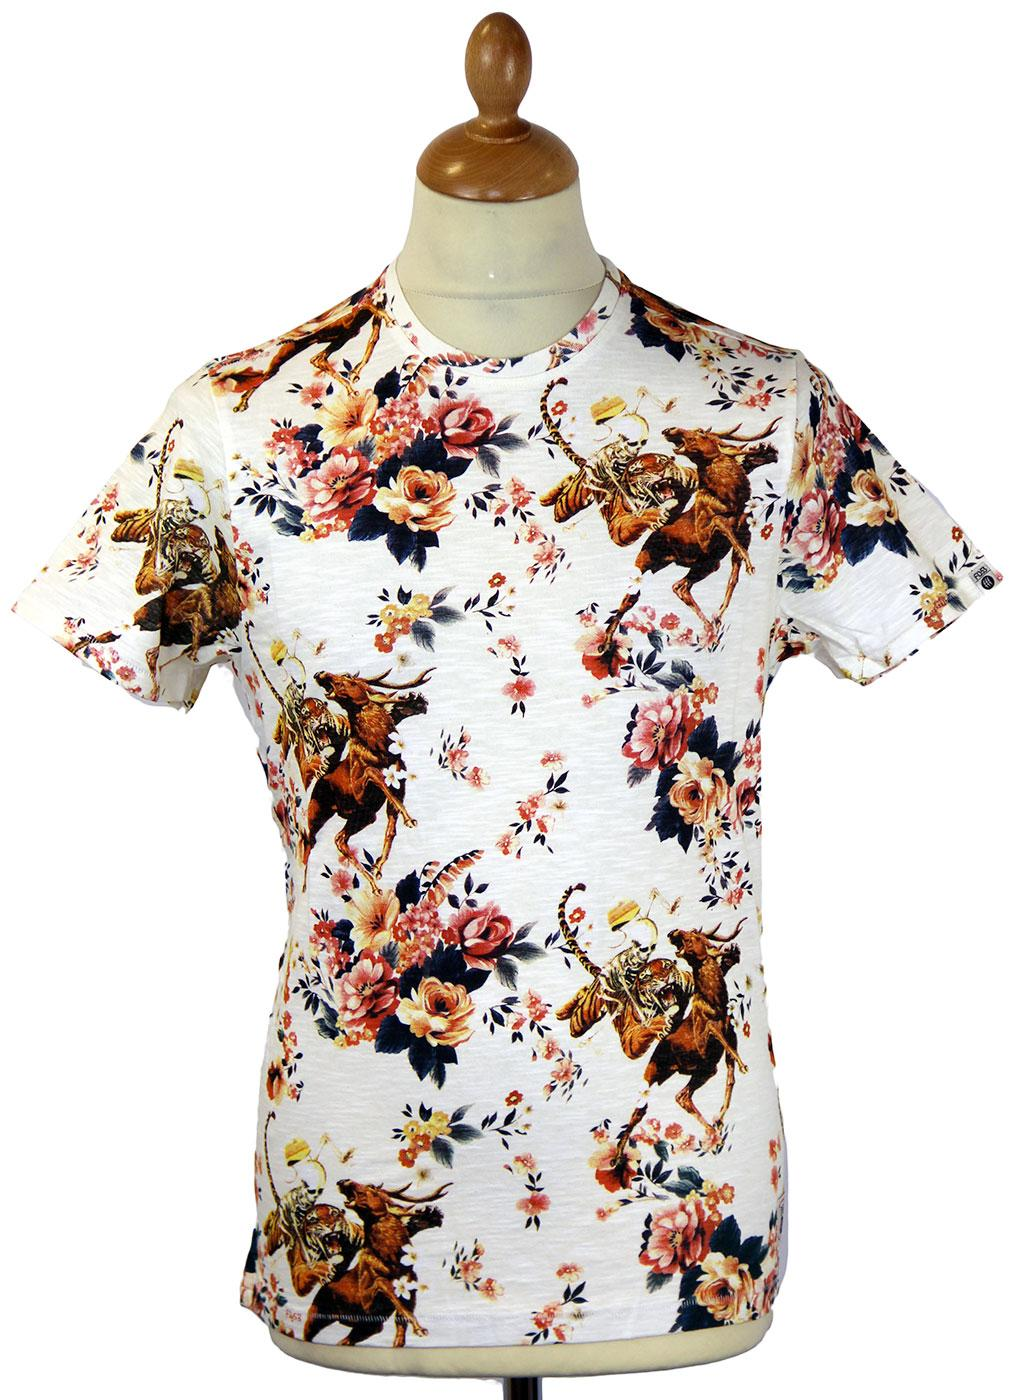 Crimson Ghost FLY53 Retro 70s Indie Floral T-shirt